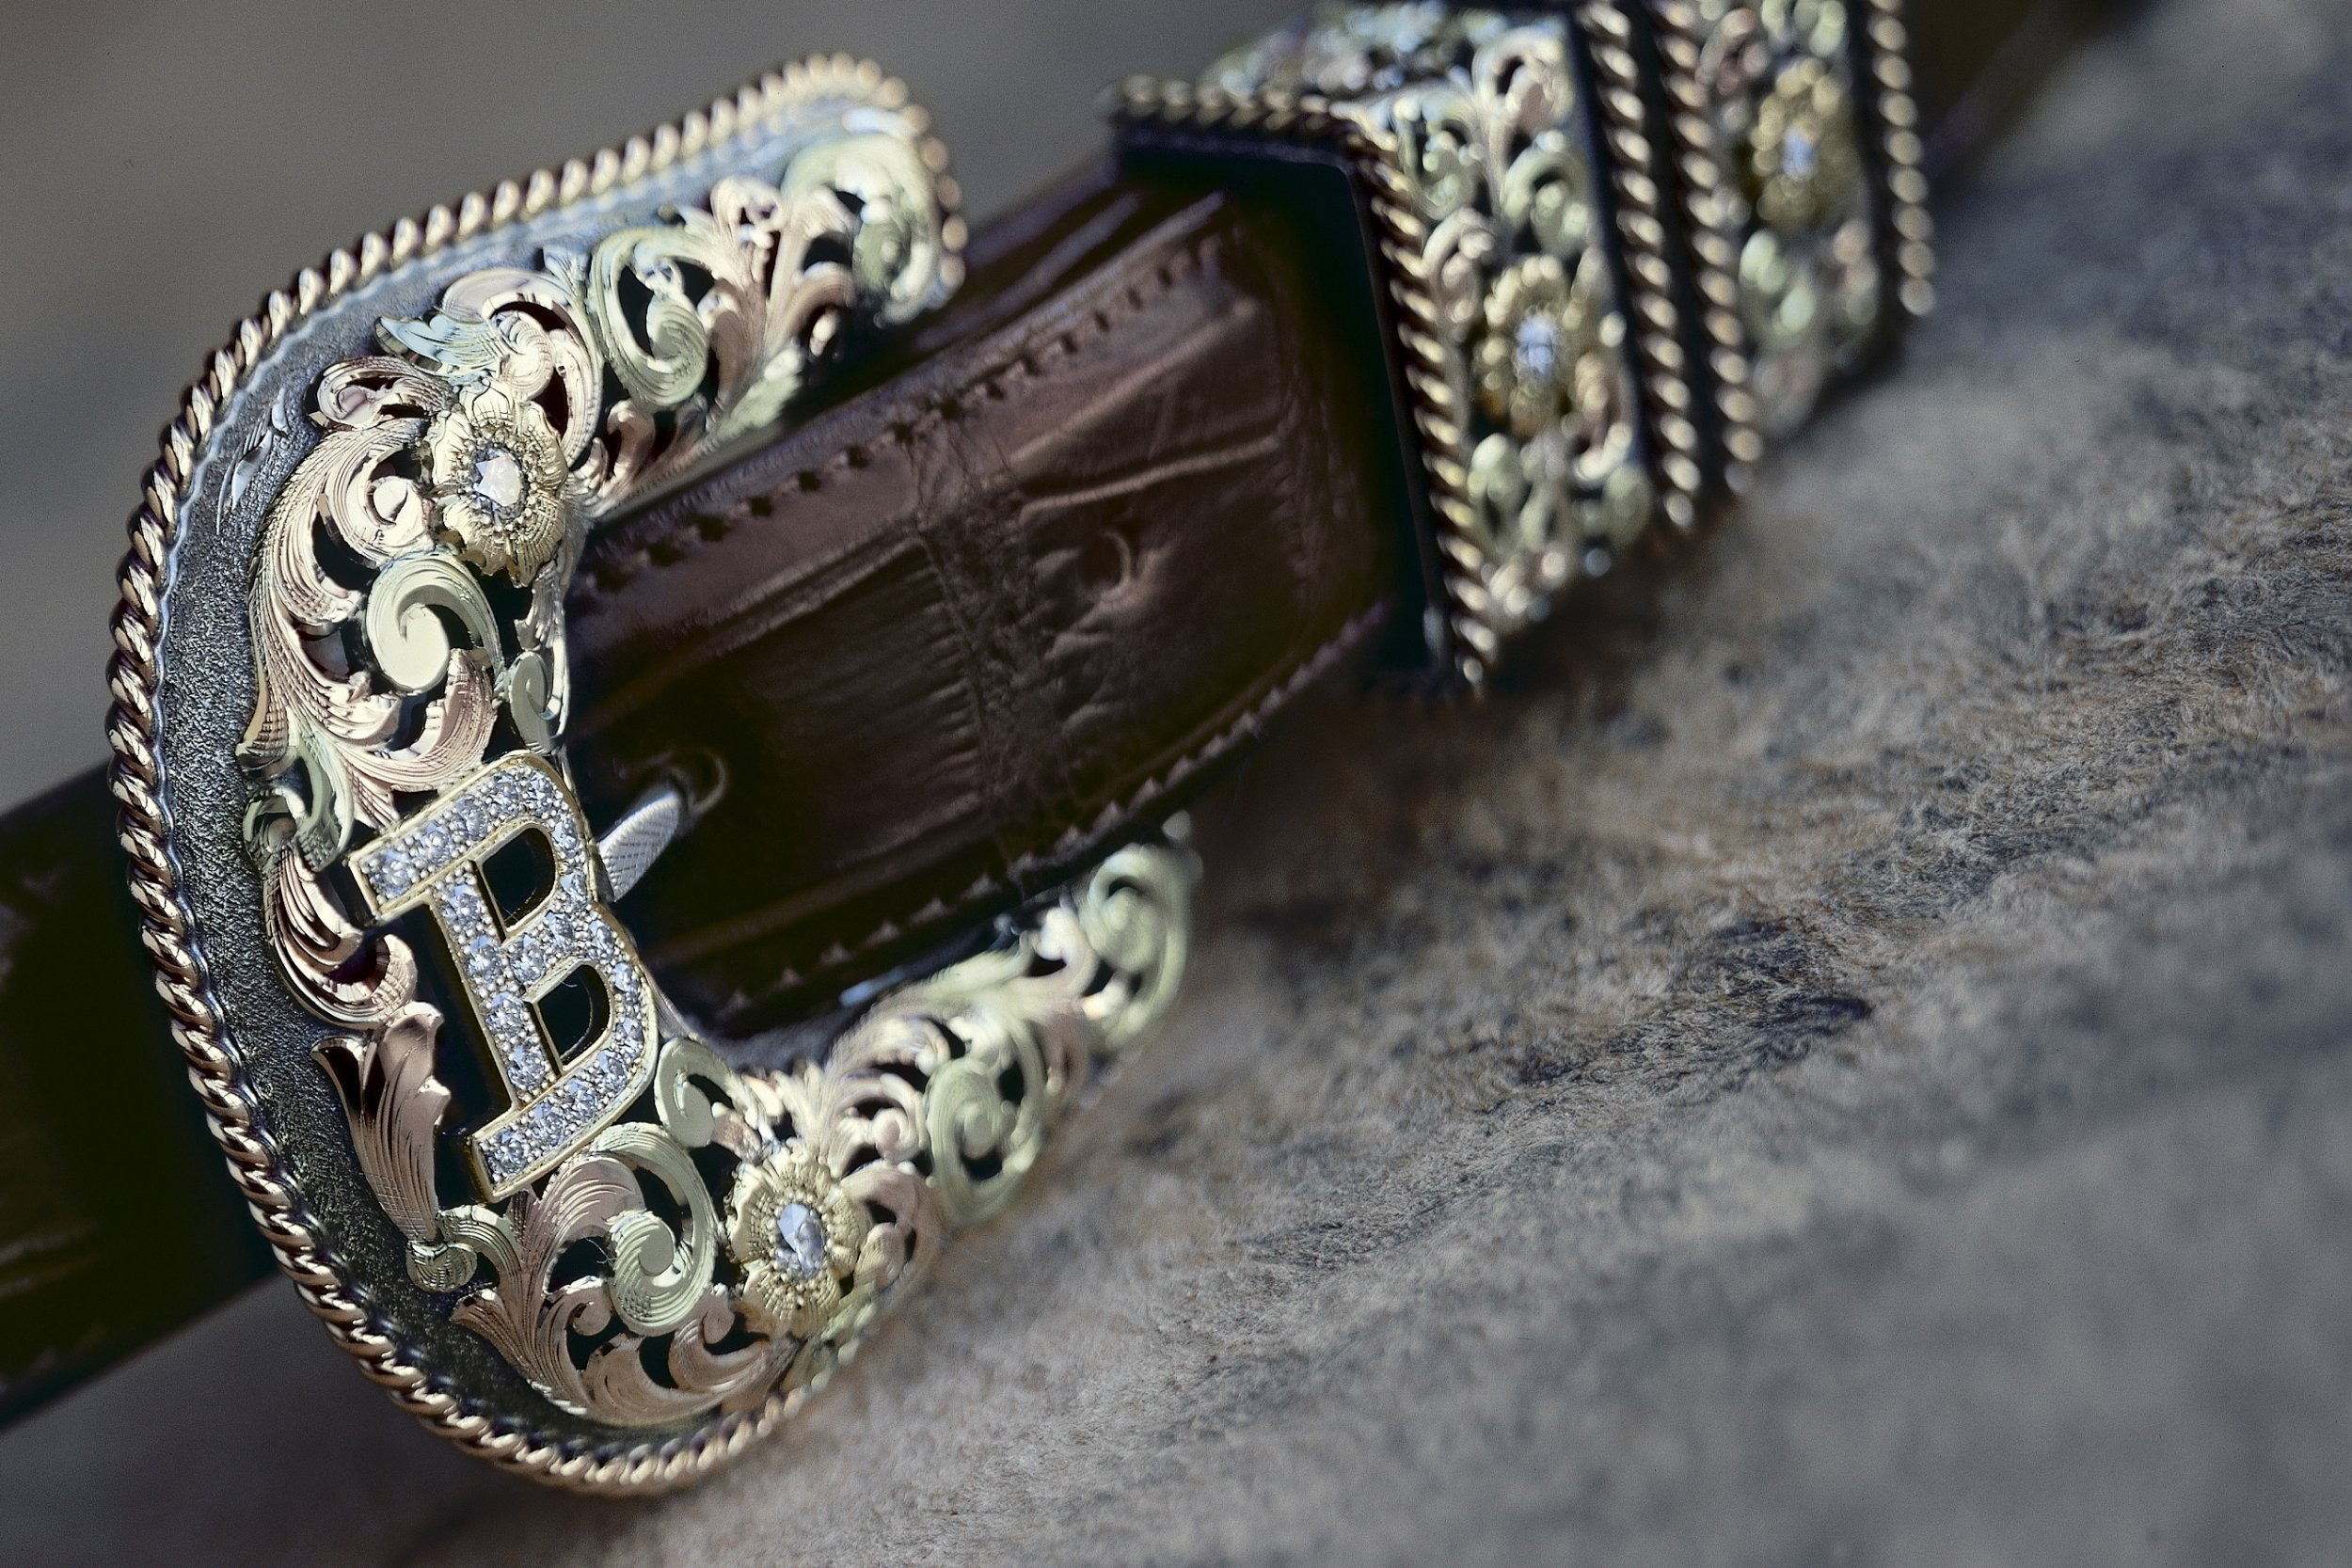 04_29_CuratedBelts_01